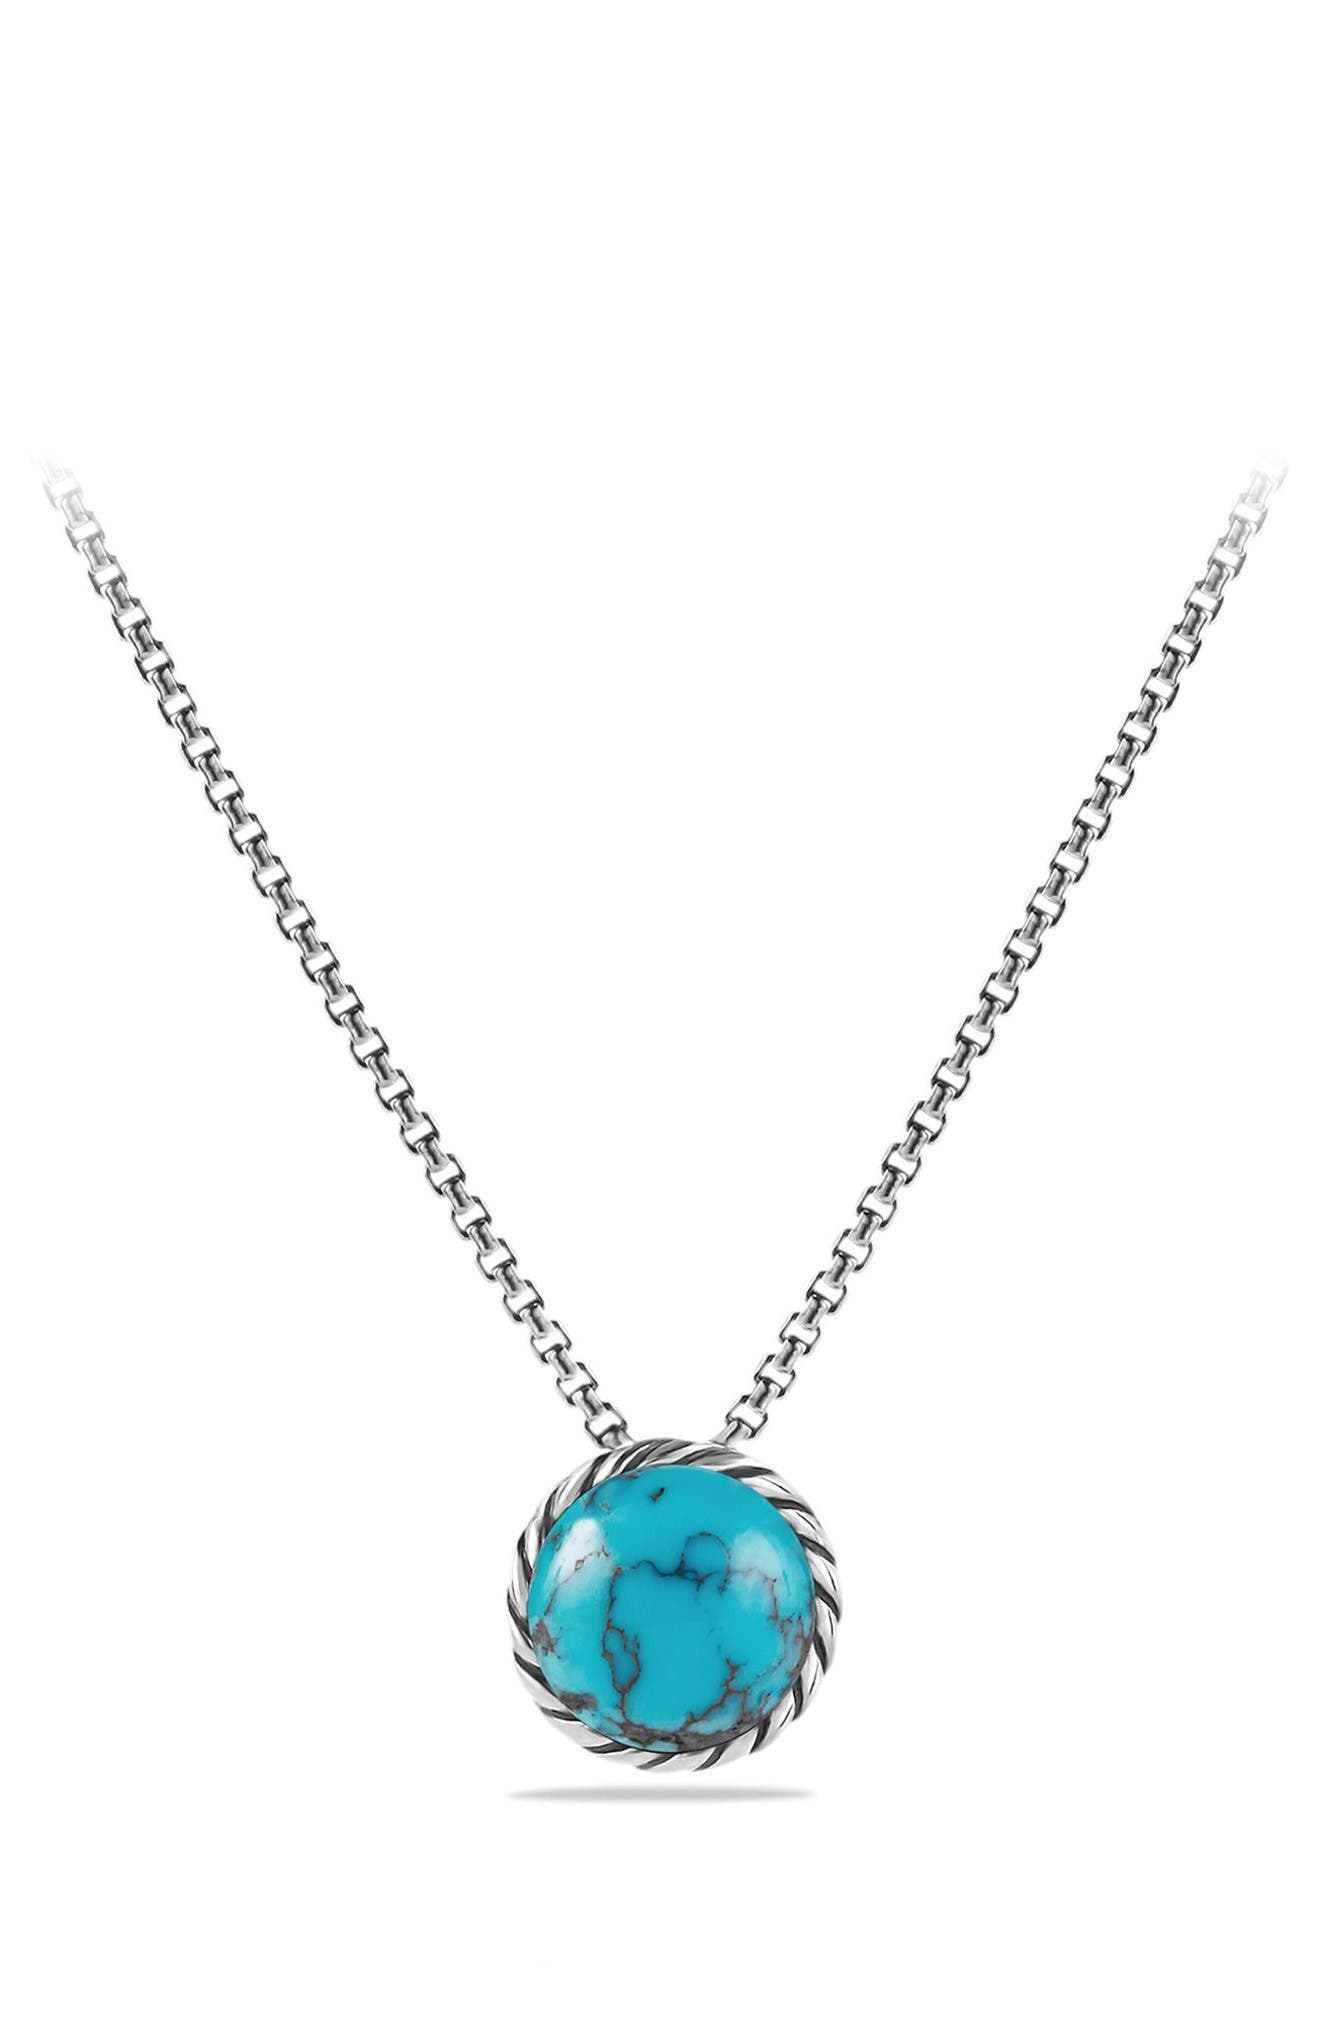 David Yurman'Châtelaine' Necklace with Gold Dome and 18K Gold